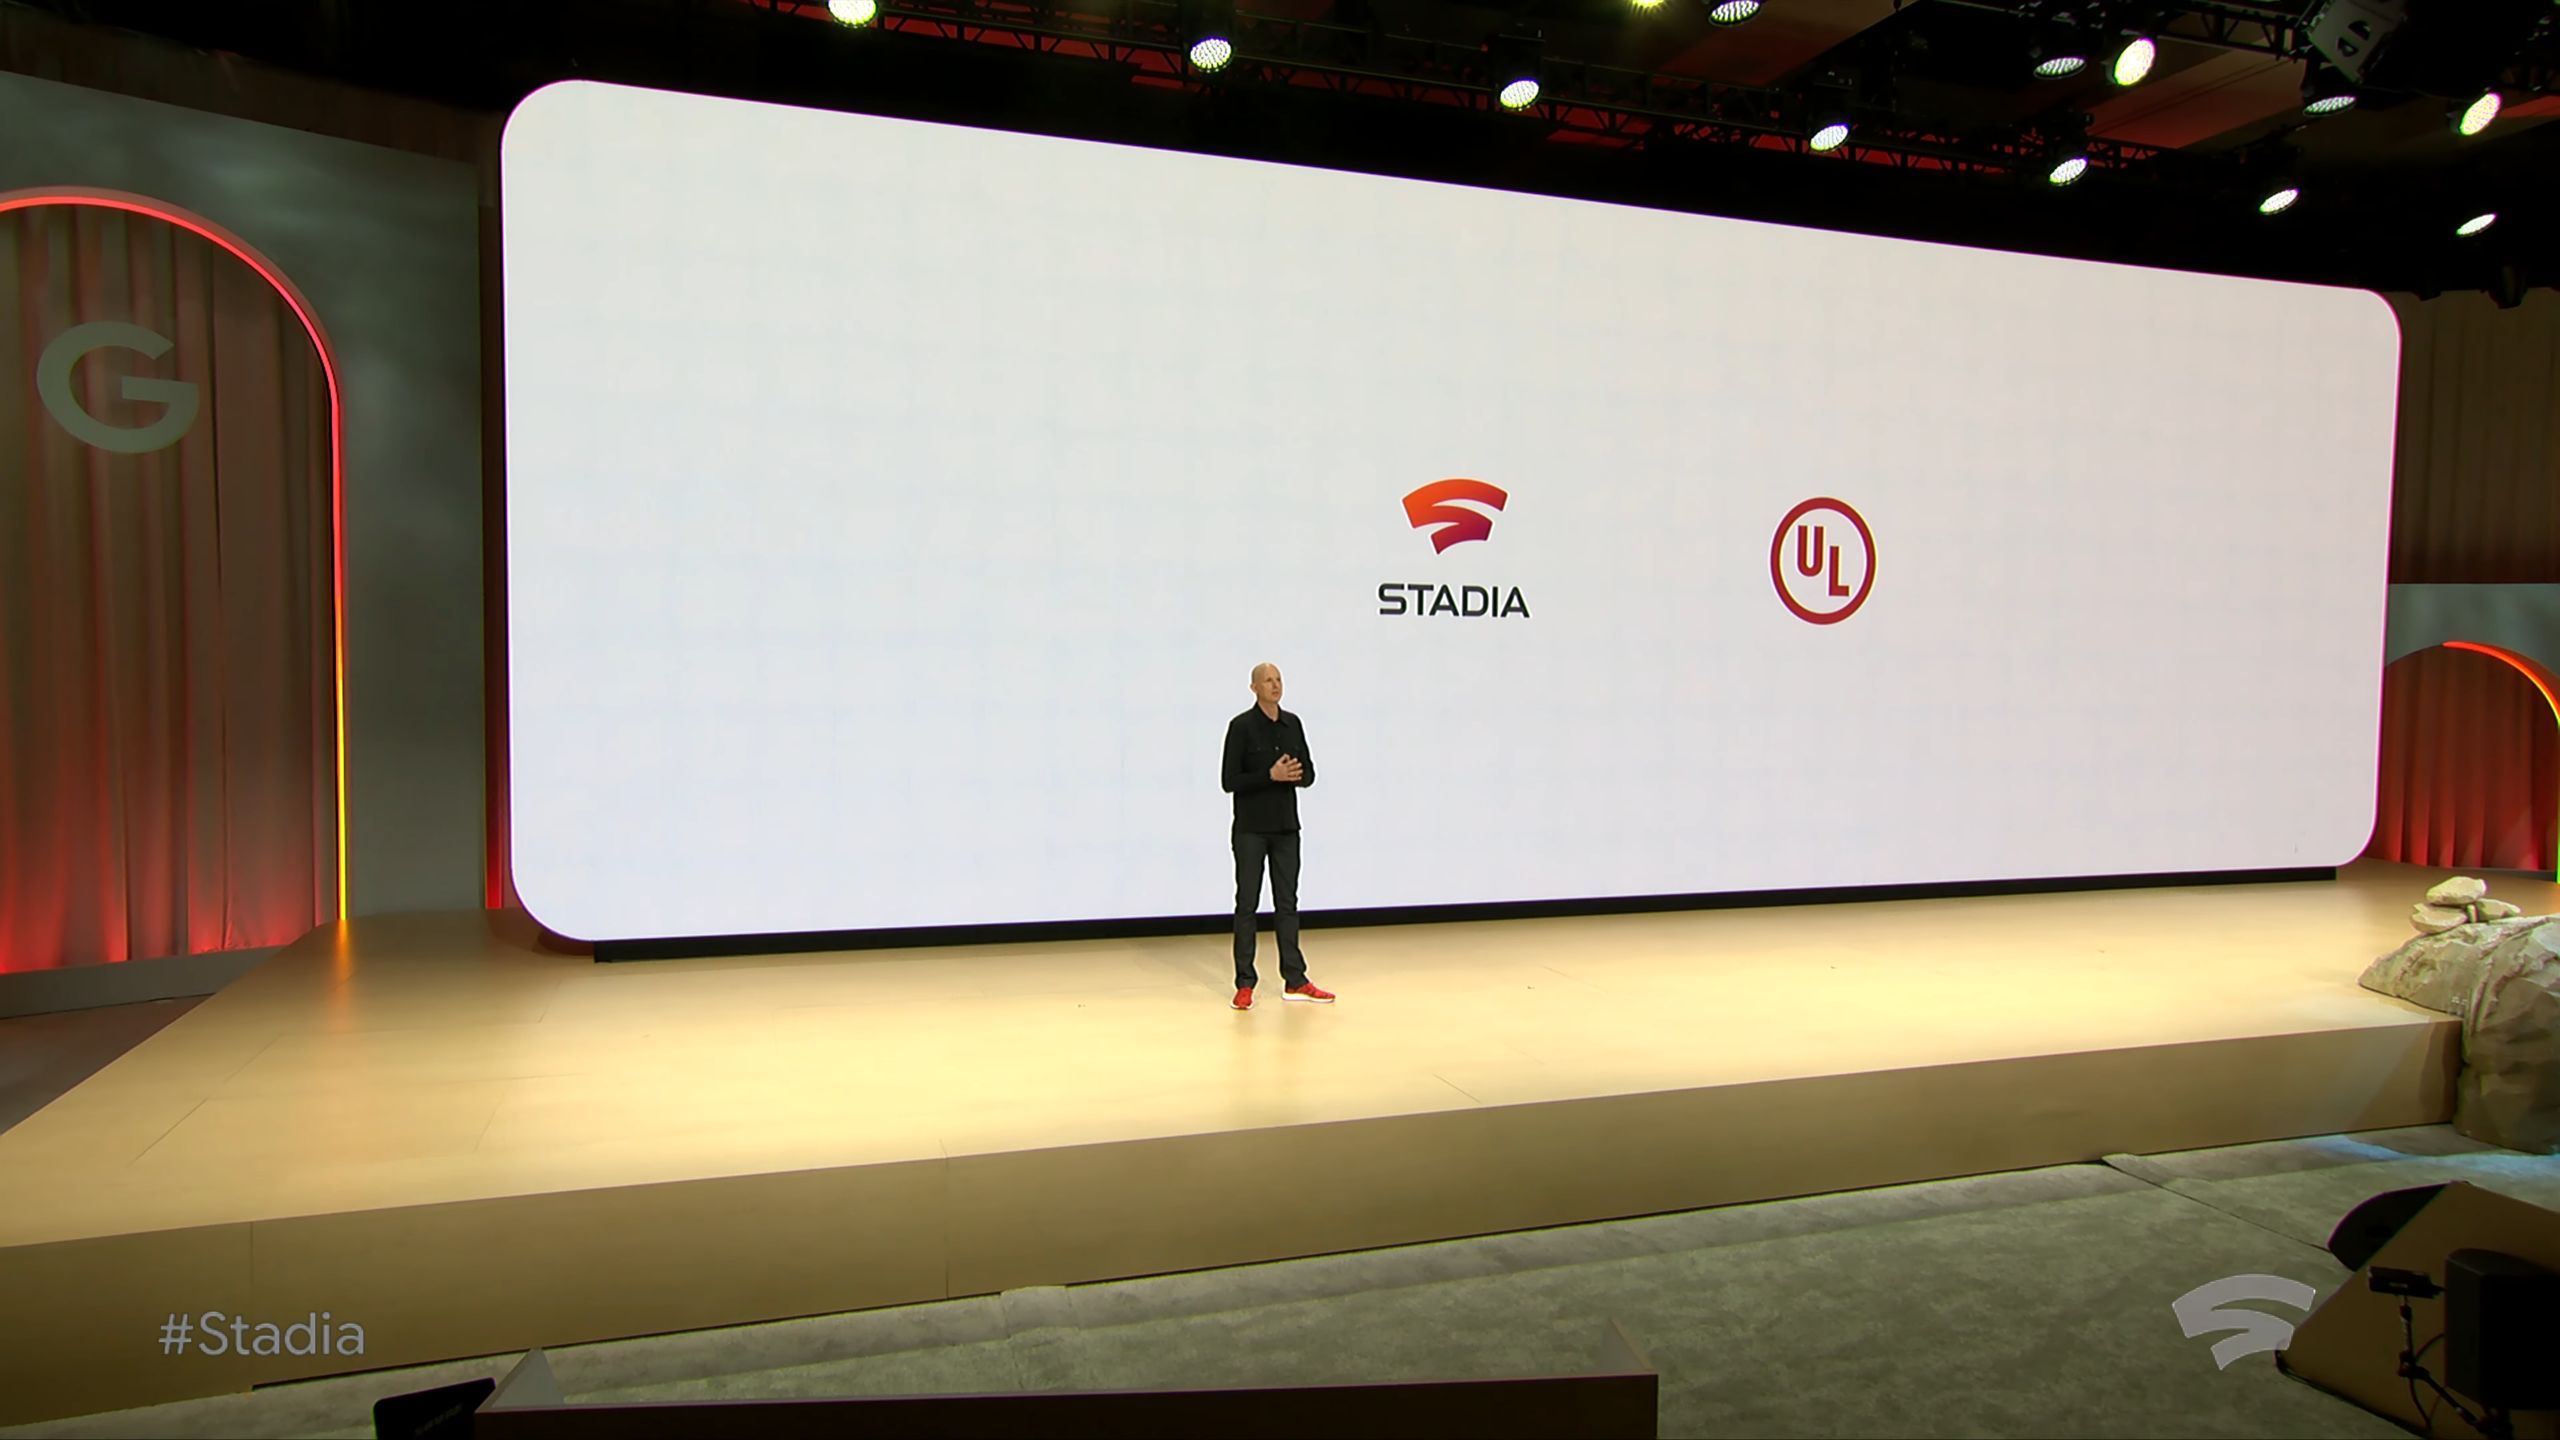 Google introduces Stadia cloud gaming platform at GDC with a UL tech demo